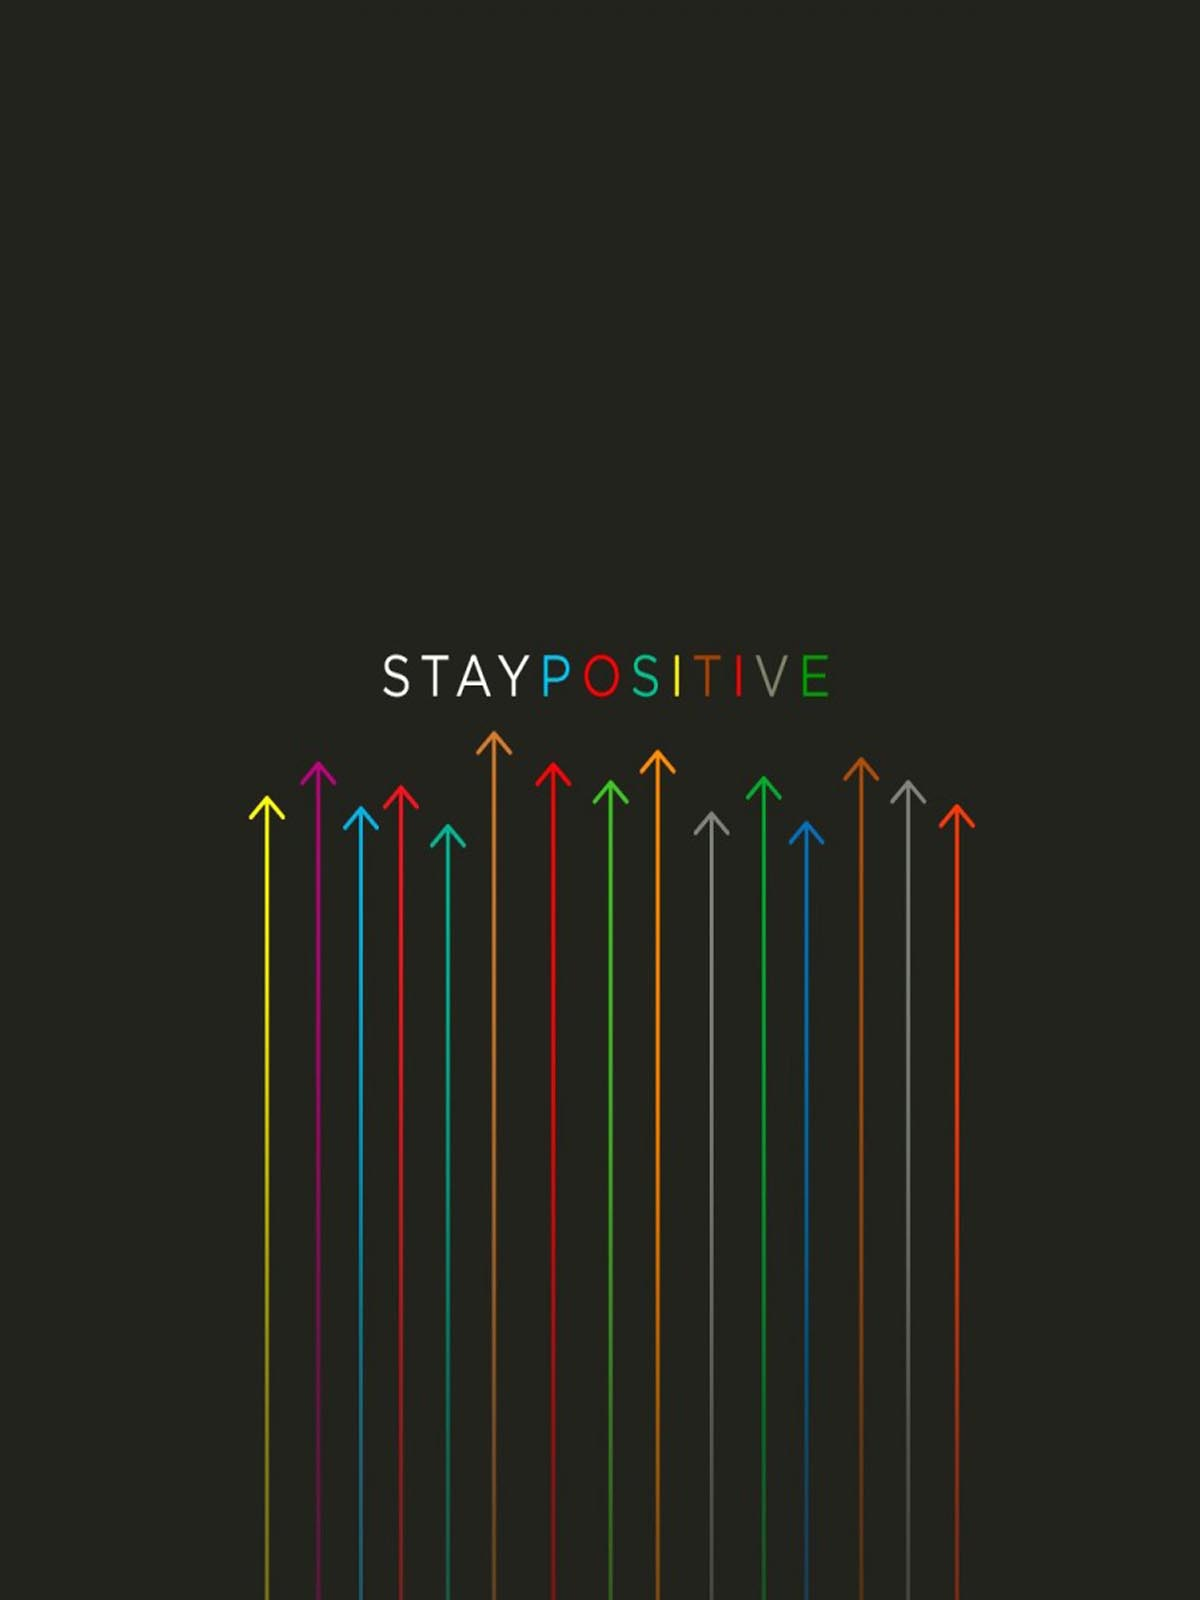 Superb Stay Positive HD Mobile Wallpaper